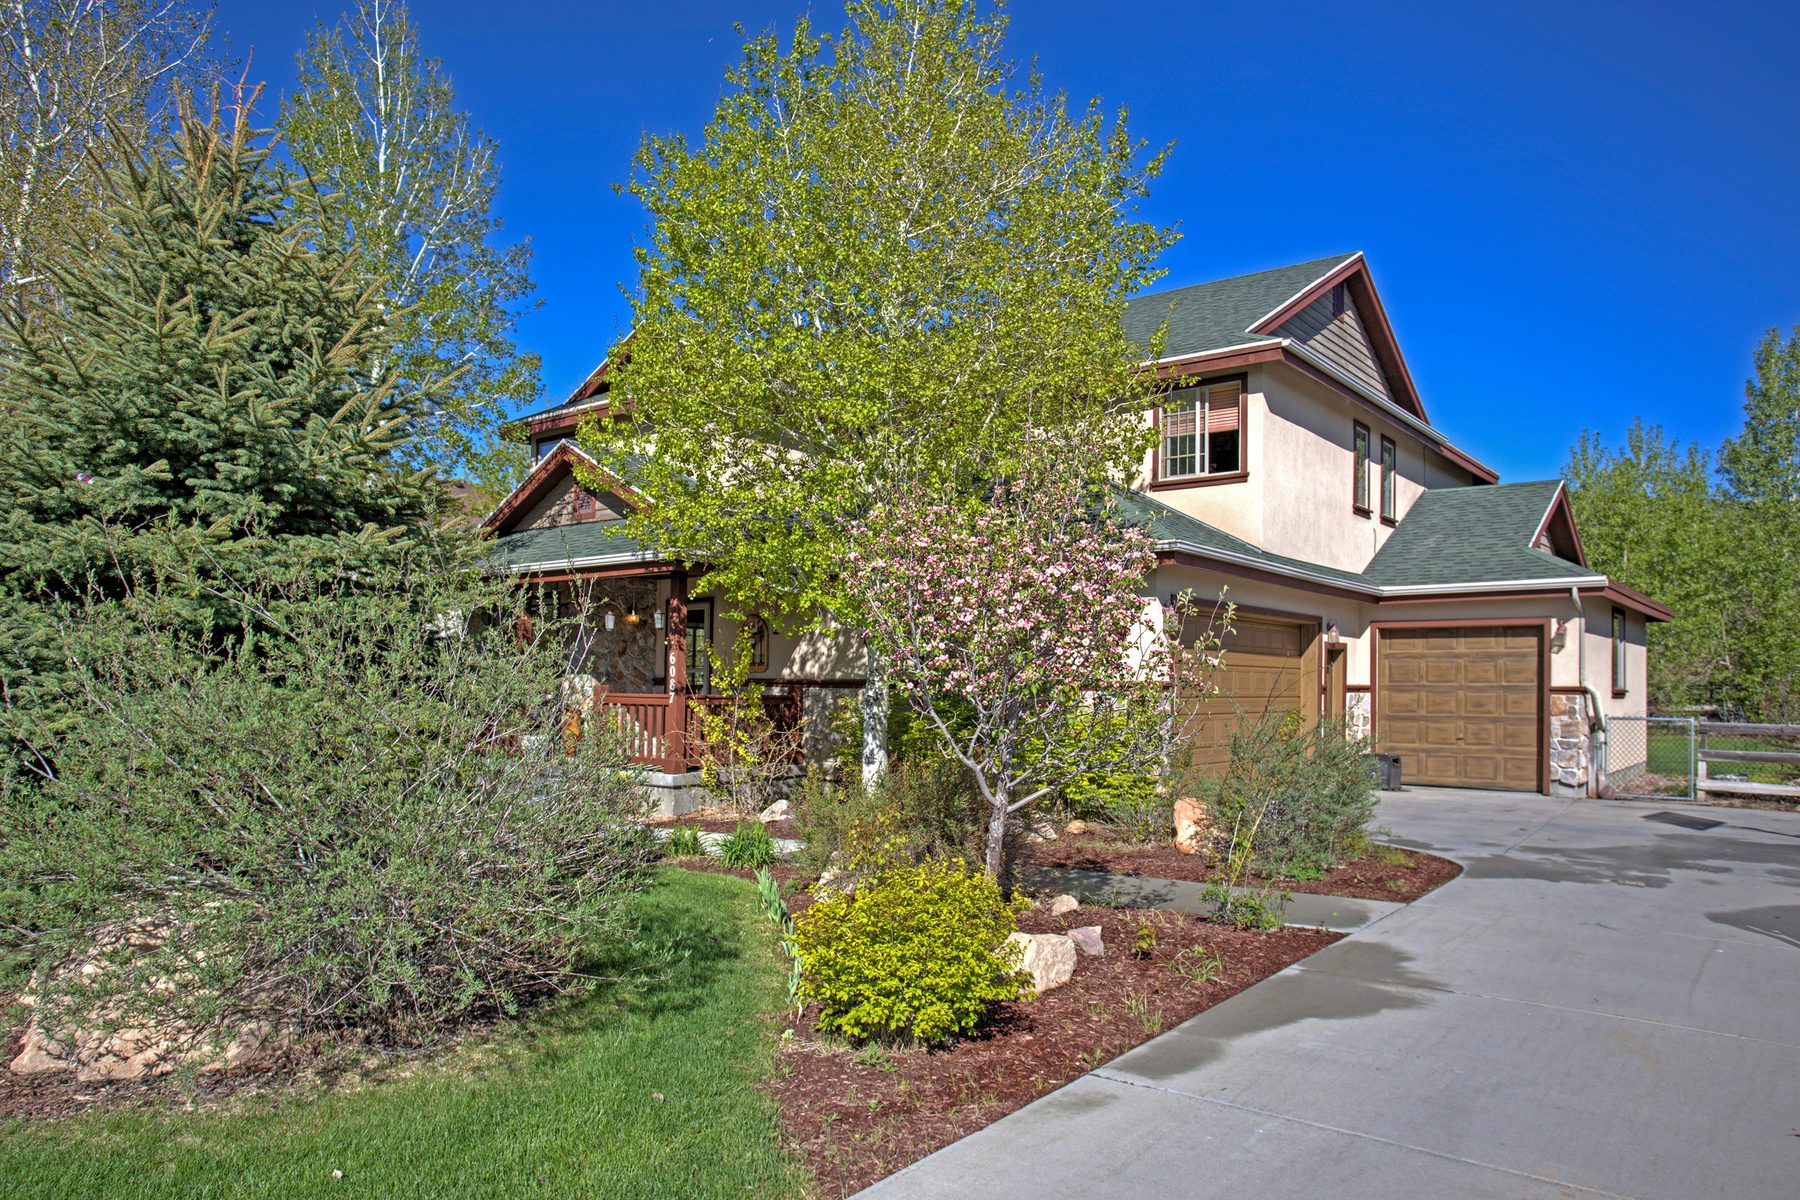 Single Family Home for Sale at Updated Home in Desirable Trailside Neighborhood 6087 N Kingsford Ave Park City, Utah 84098 United States